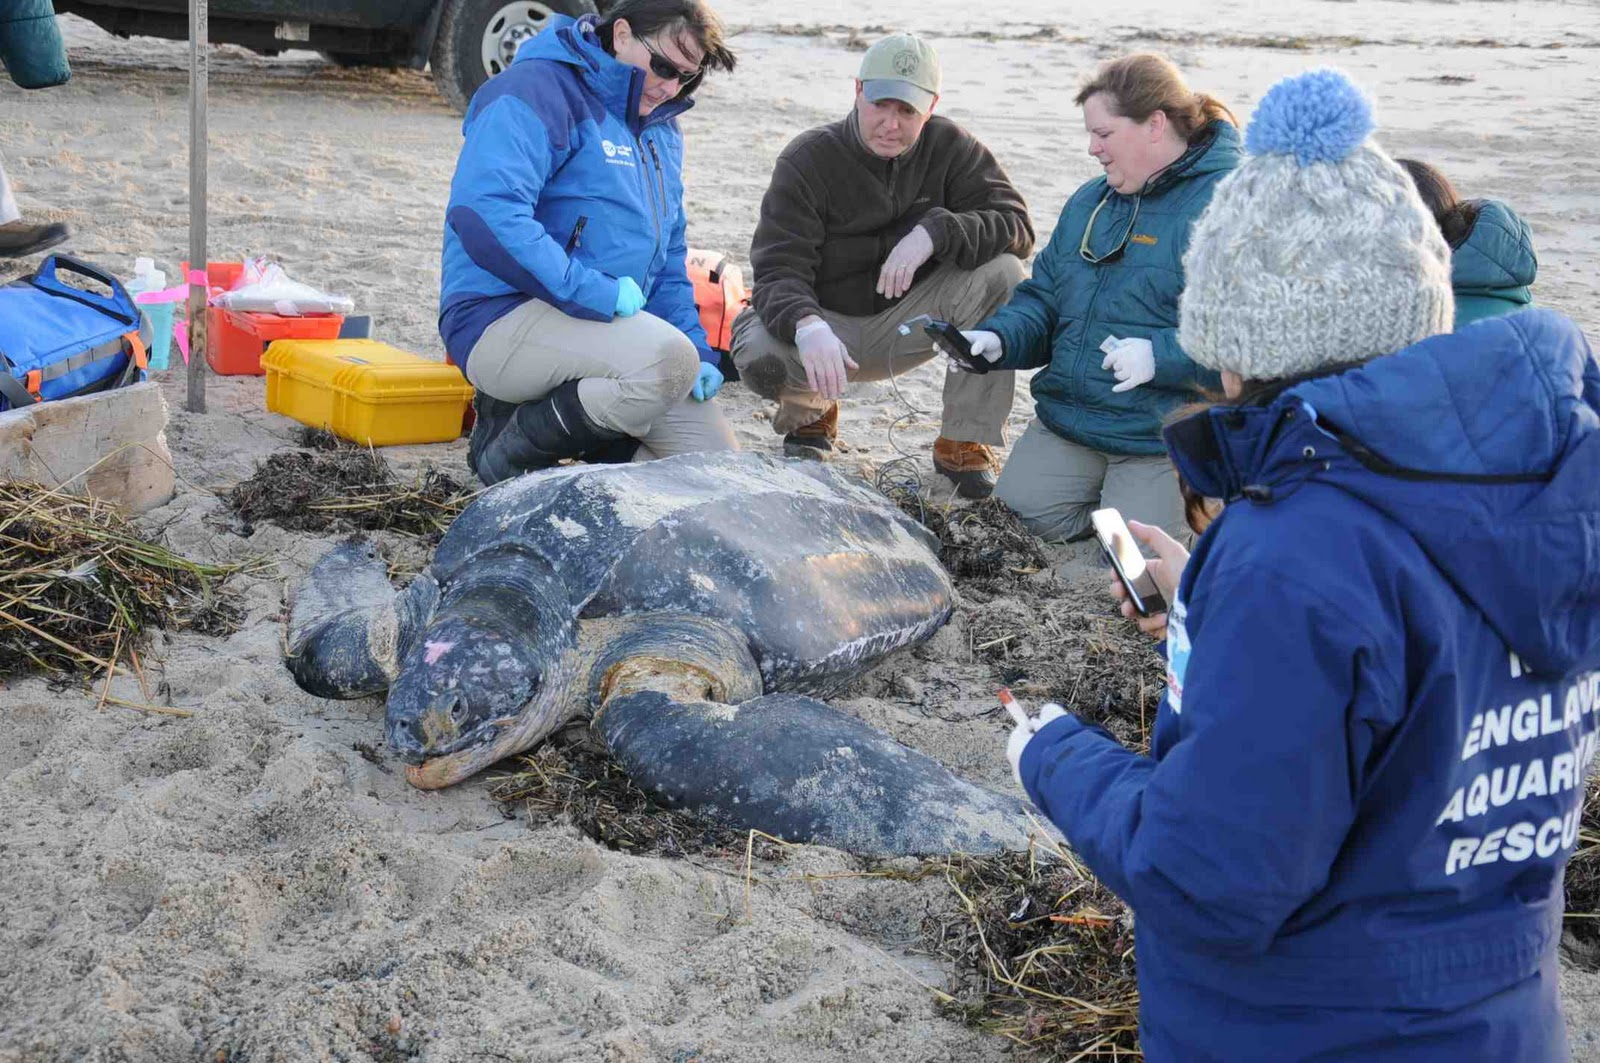 Cape Cod Animal Rescue Part - 24: Marine Animal Rescue Team Biologists Examine A Stranded Leatherback Turtle  On A Cape Cod Beach.